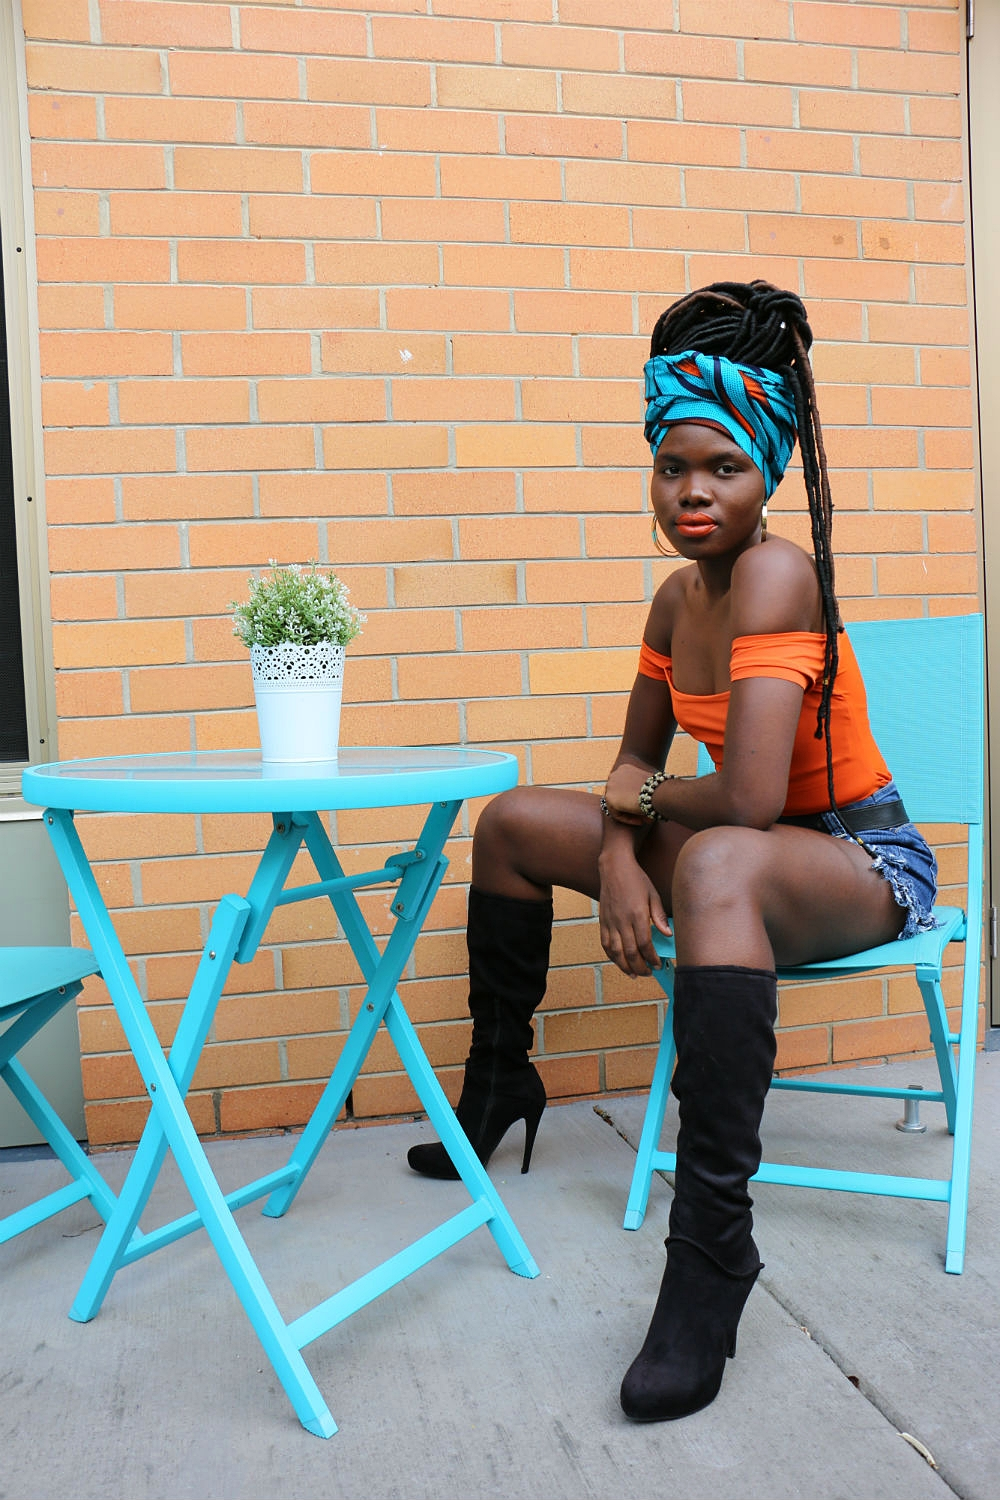 In line with our colour palette and mood board, Mariama opted for a pair of knee high black boots (edgy and chic), a denim shorts that she had recycled from a jeans and an off-the-shoulder boldly coloured orange bodysuit.